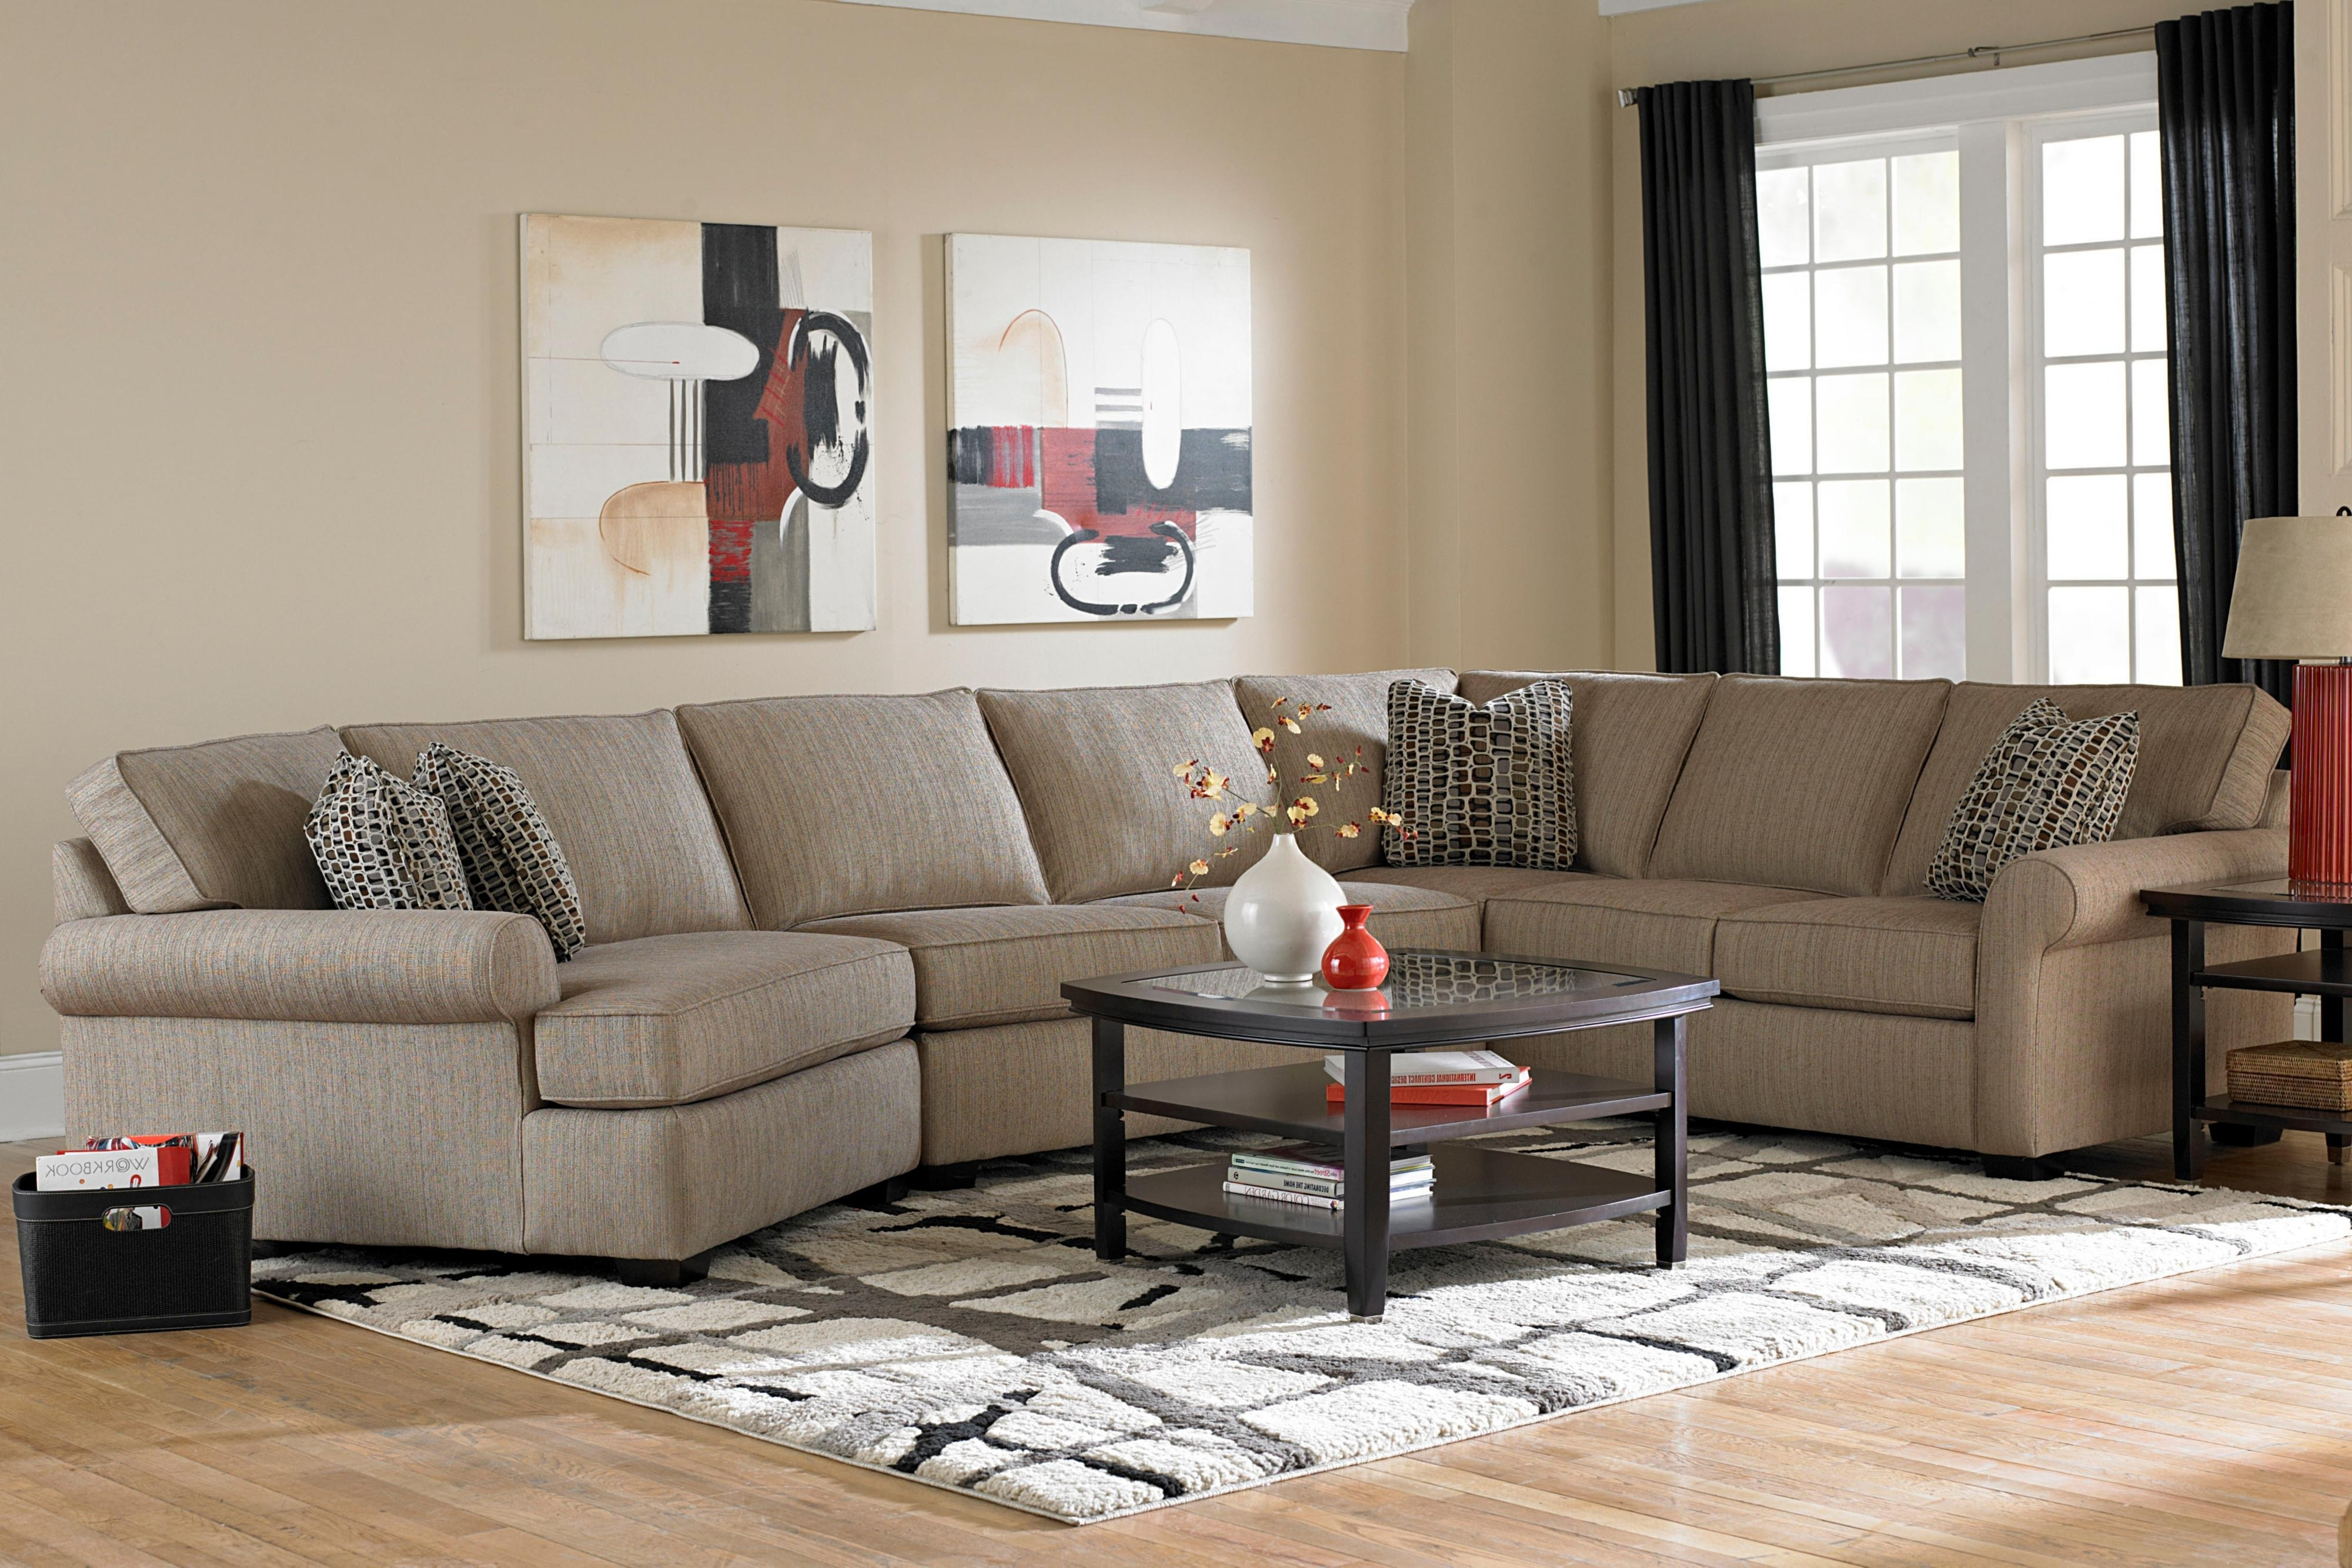 Sectional Sofas In North Carolina Within 2019 Living Room Design : Sectional Furniture Living Room Hickory Nc (View 3 of 20)